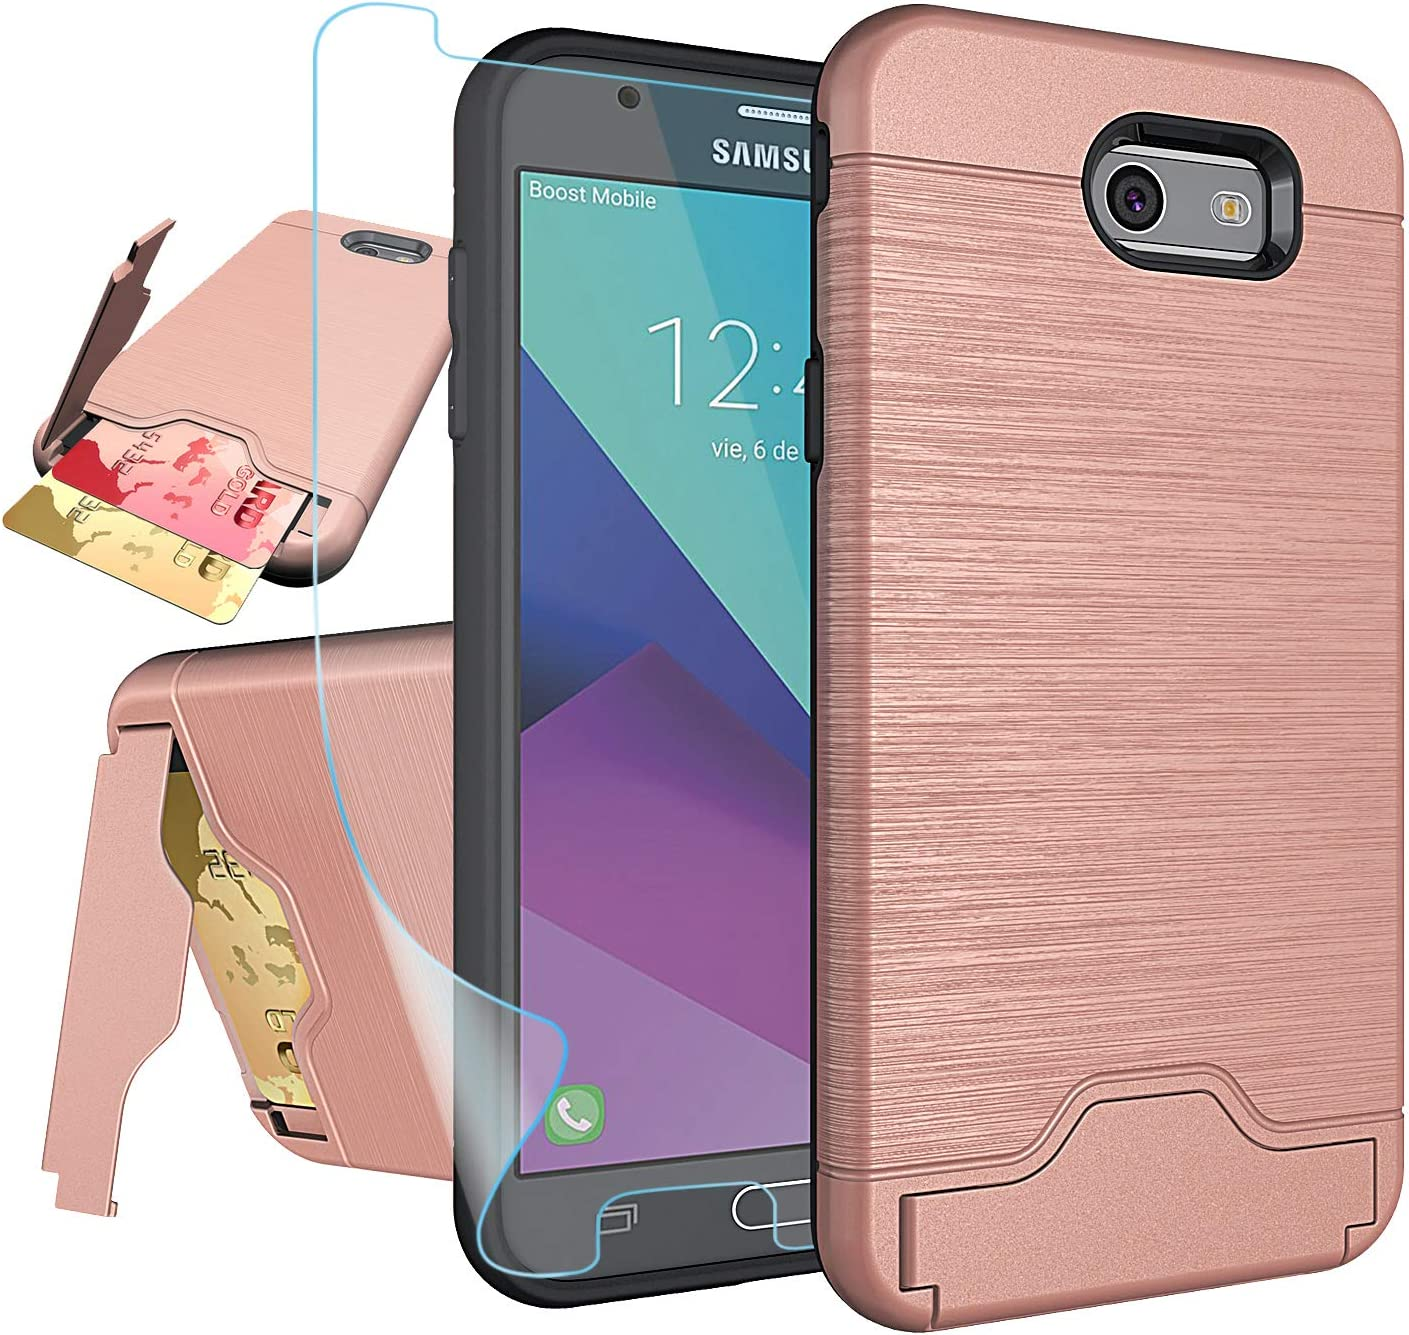 Galaxy J7 V 2017/ J7 Perx/J7 Prime/J7 Sky Pro/Halo Case with HD Screen Protector,NiuBox[Card Slot Wallet][Kickstand] Full Body Shock Absorption Protective Phone Case for Samsung J7V 2017-Rose Gold